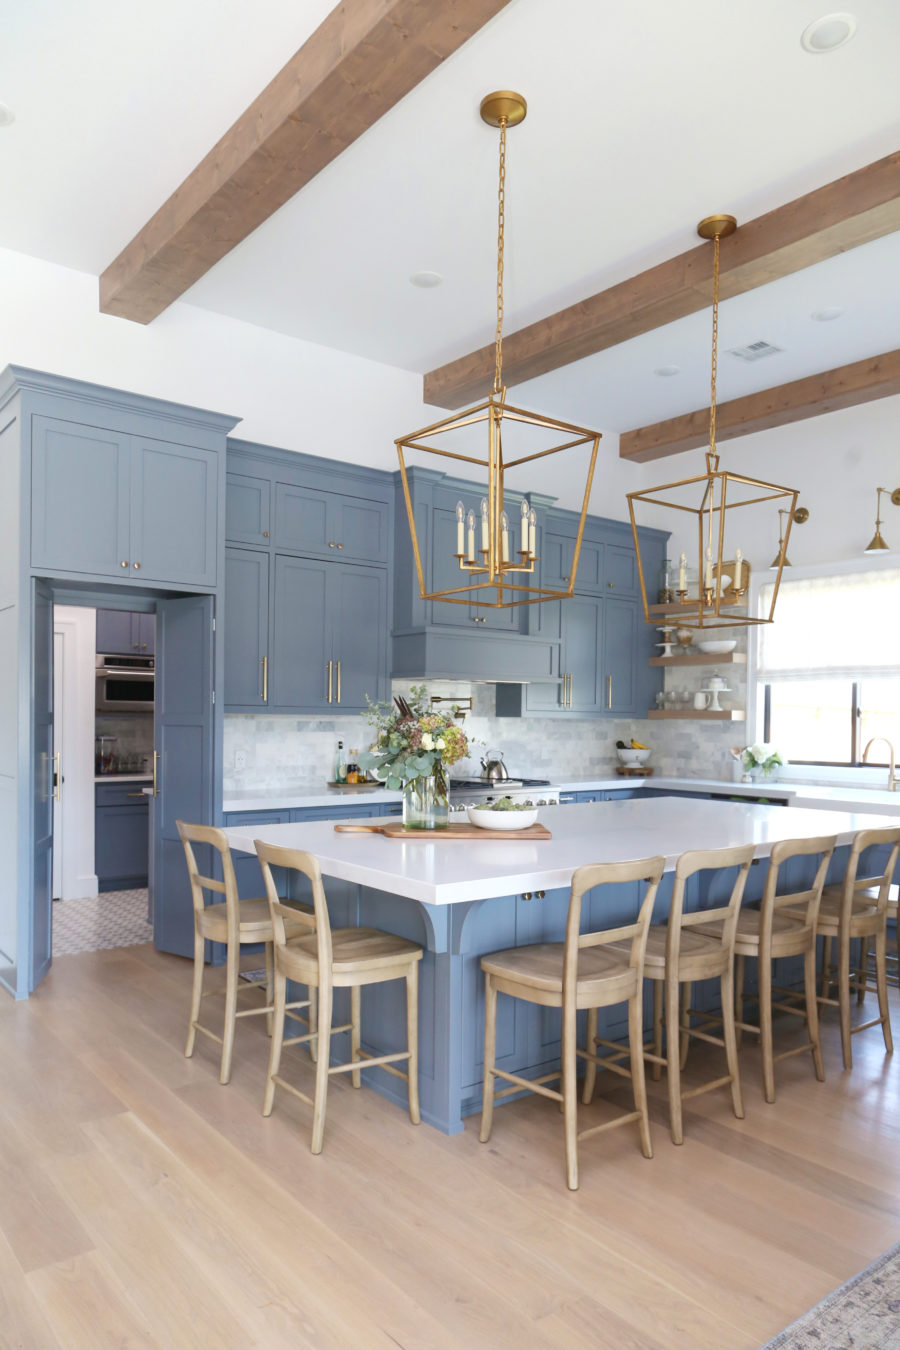 CC and Mike Frisco I Project Reveal-63 gray kitchen island and cabinets with wood bar stools quartz countertops and gold lanterns large kitchen window with gold sconces hidden pantry